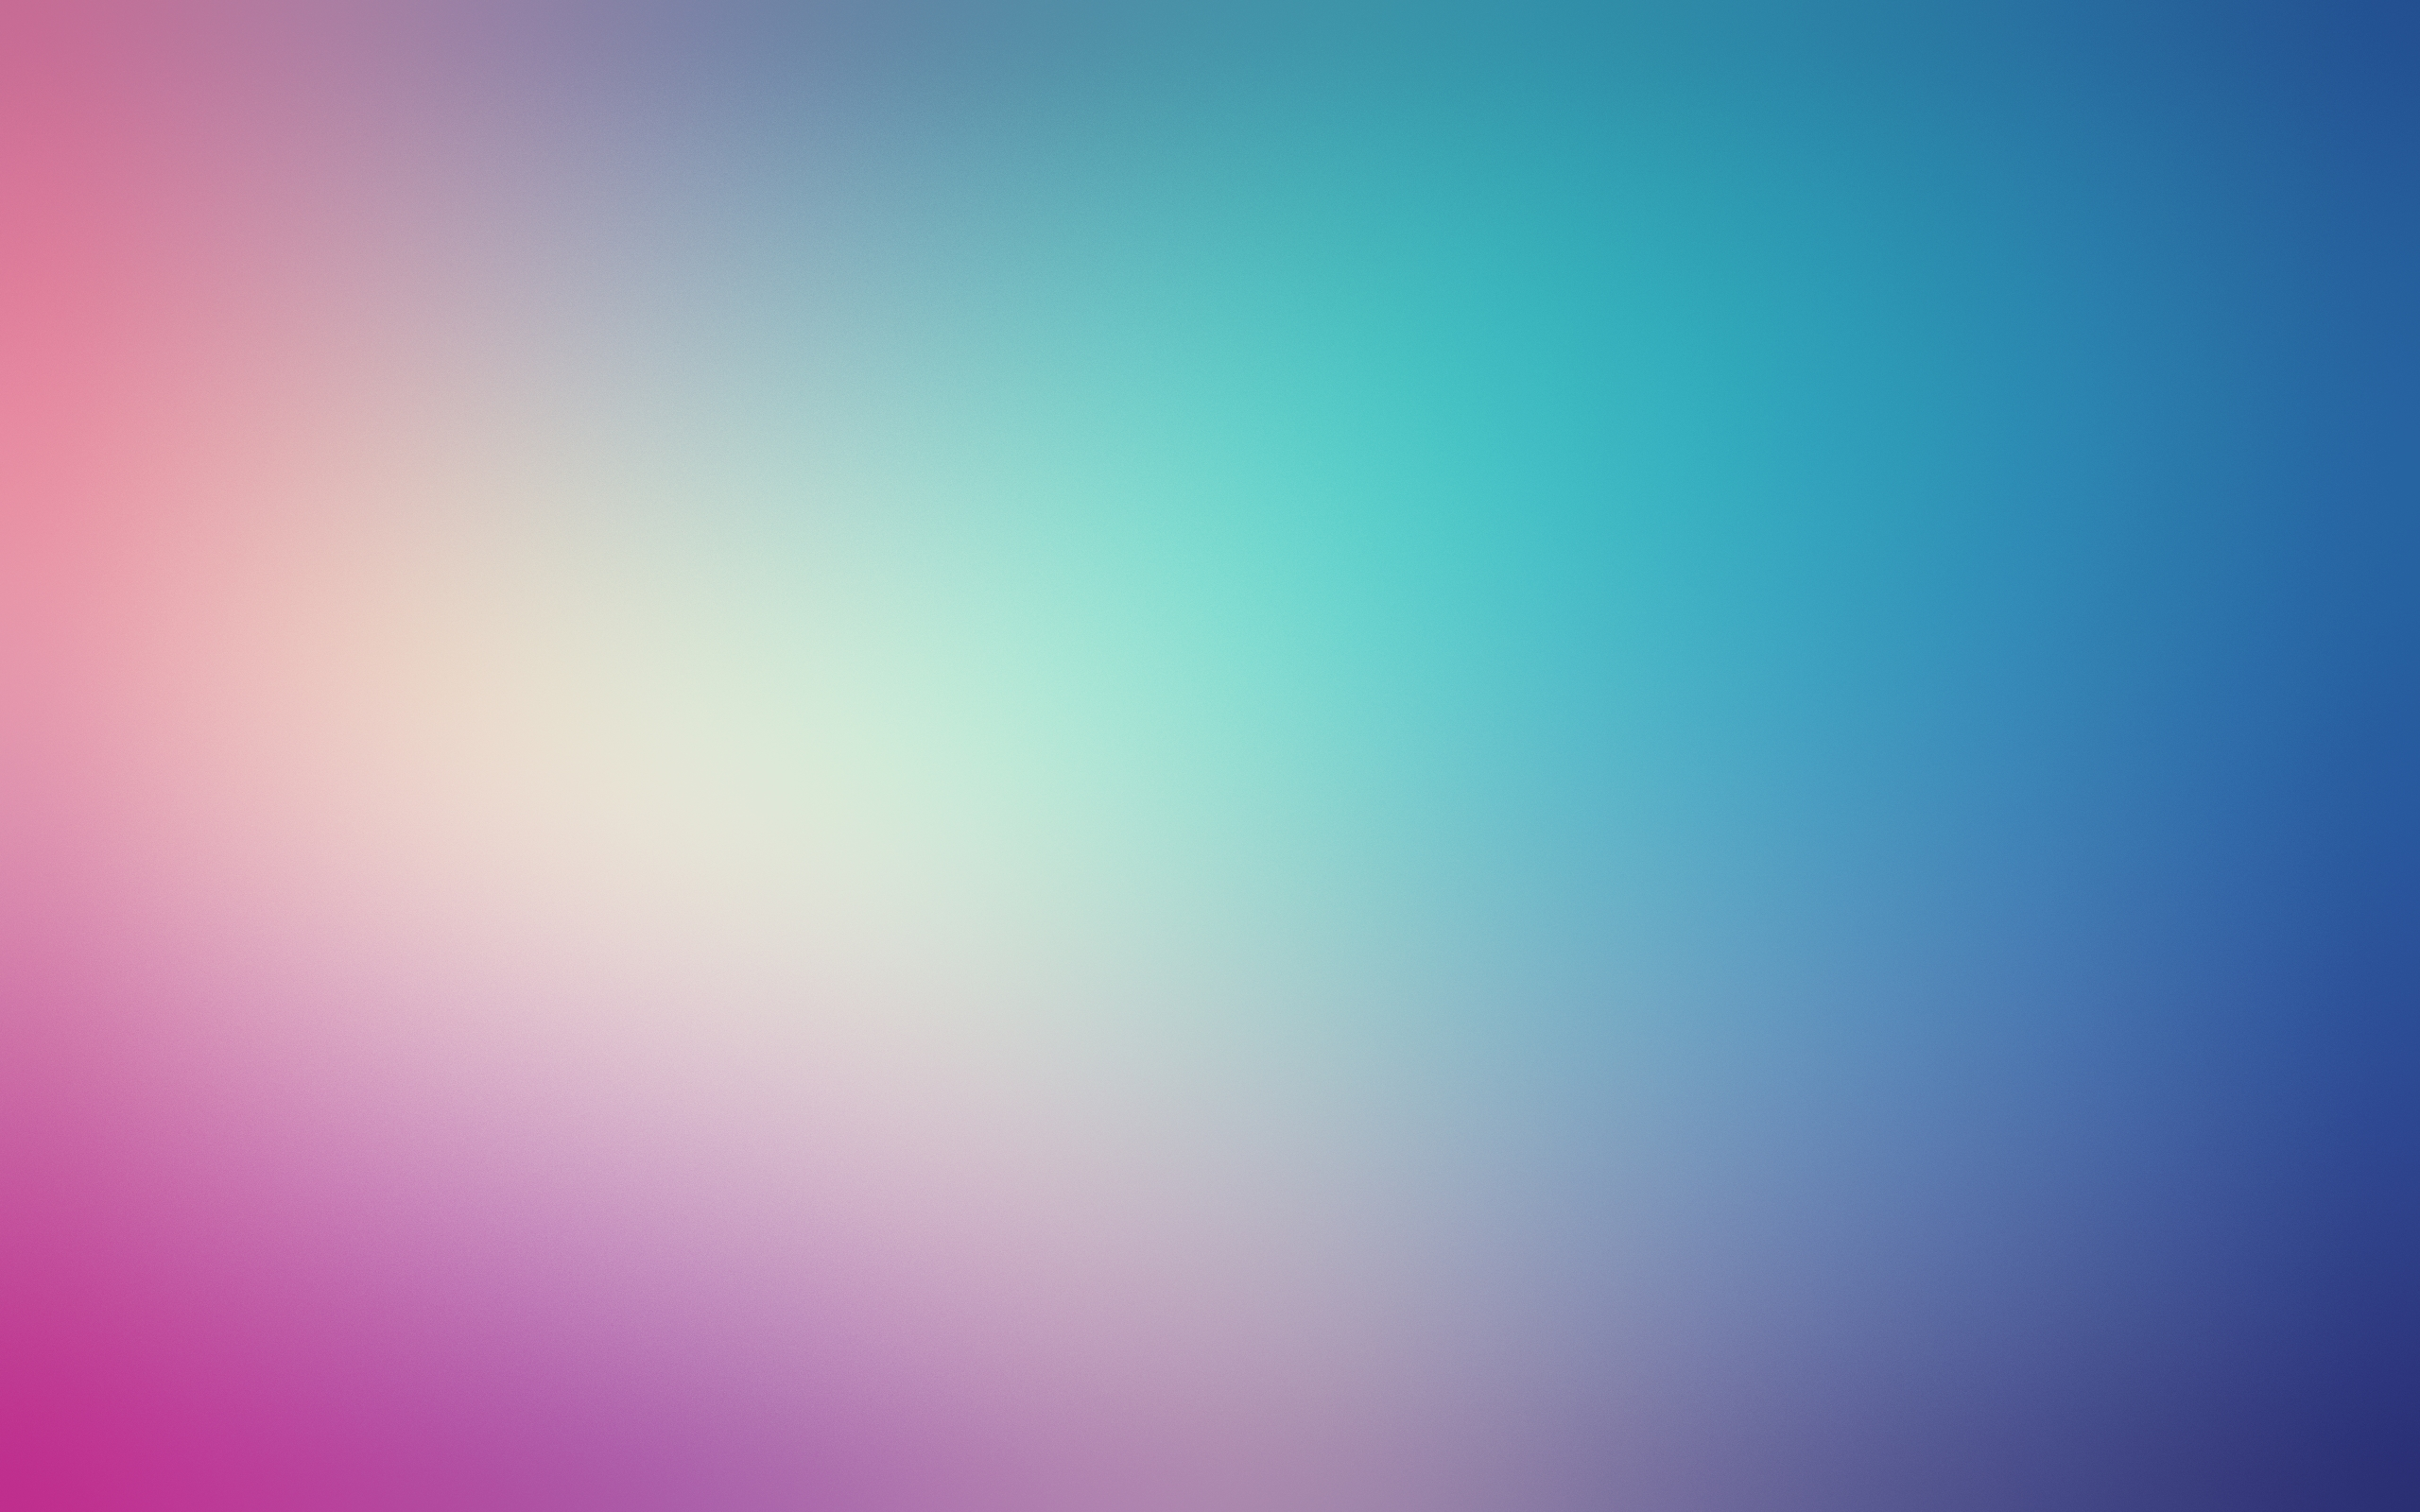 Amazing Gradient Wallpaper